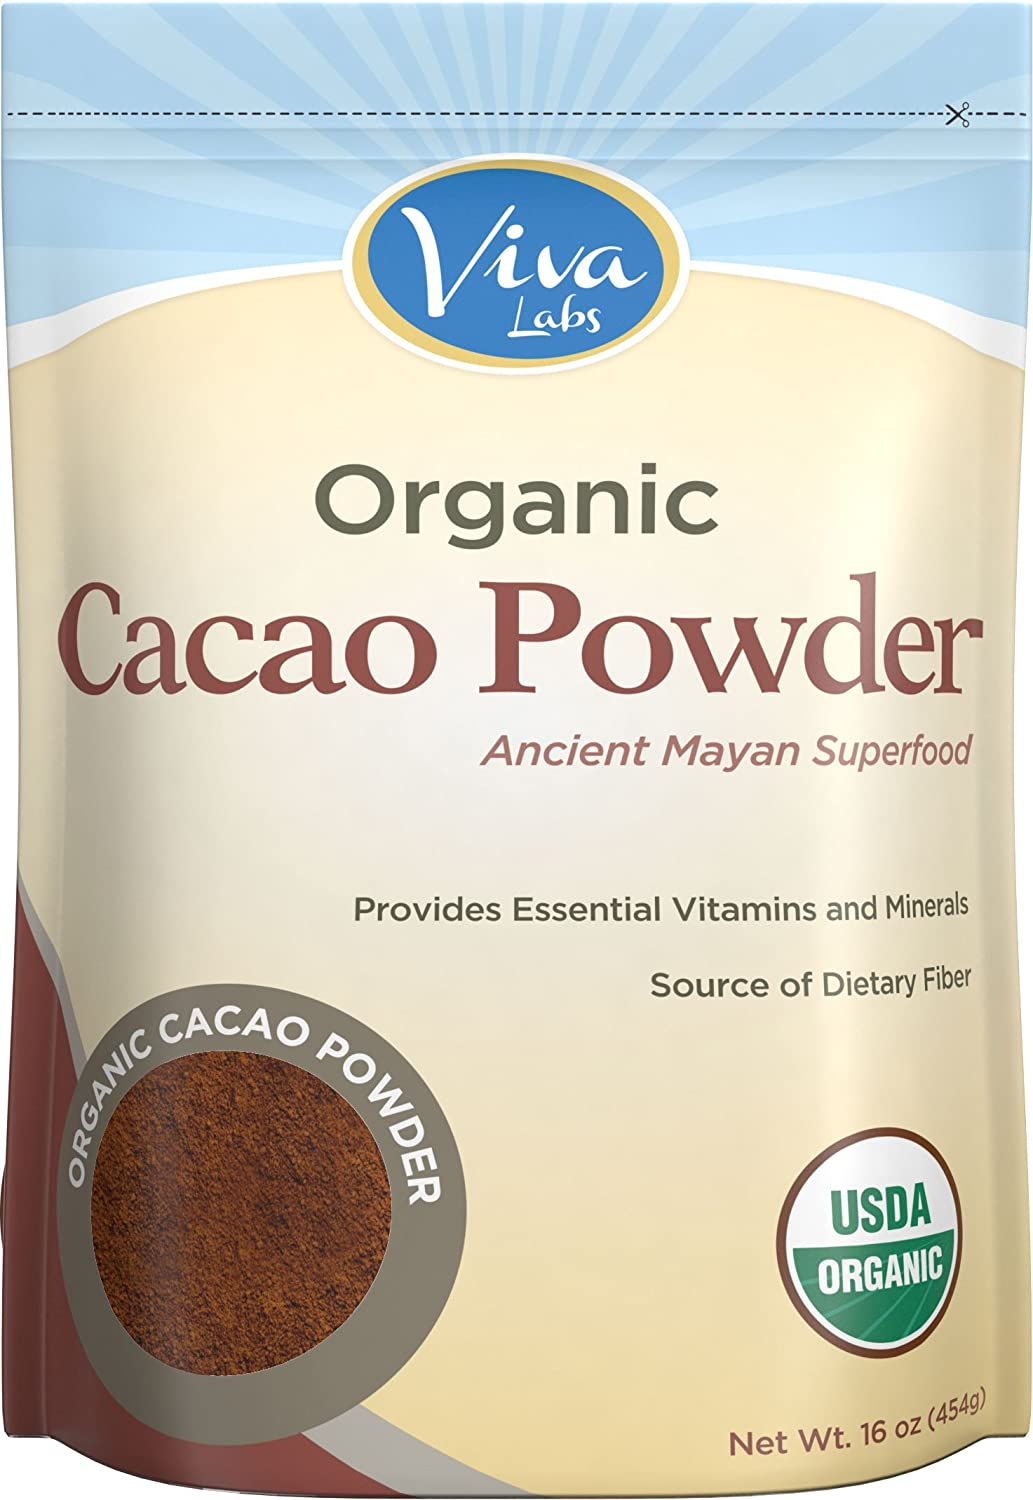 Viva Labs - The BEST Tasting Certified Organic Cacao Powder, 1 LB